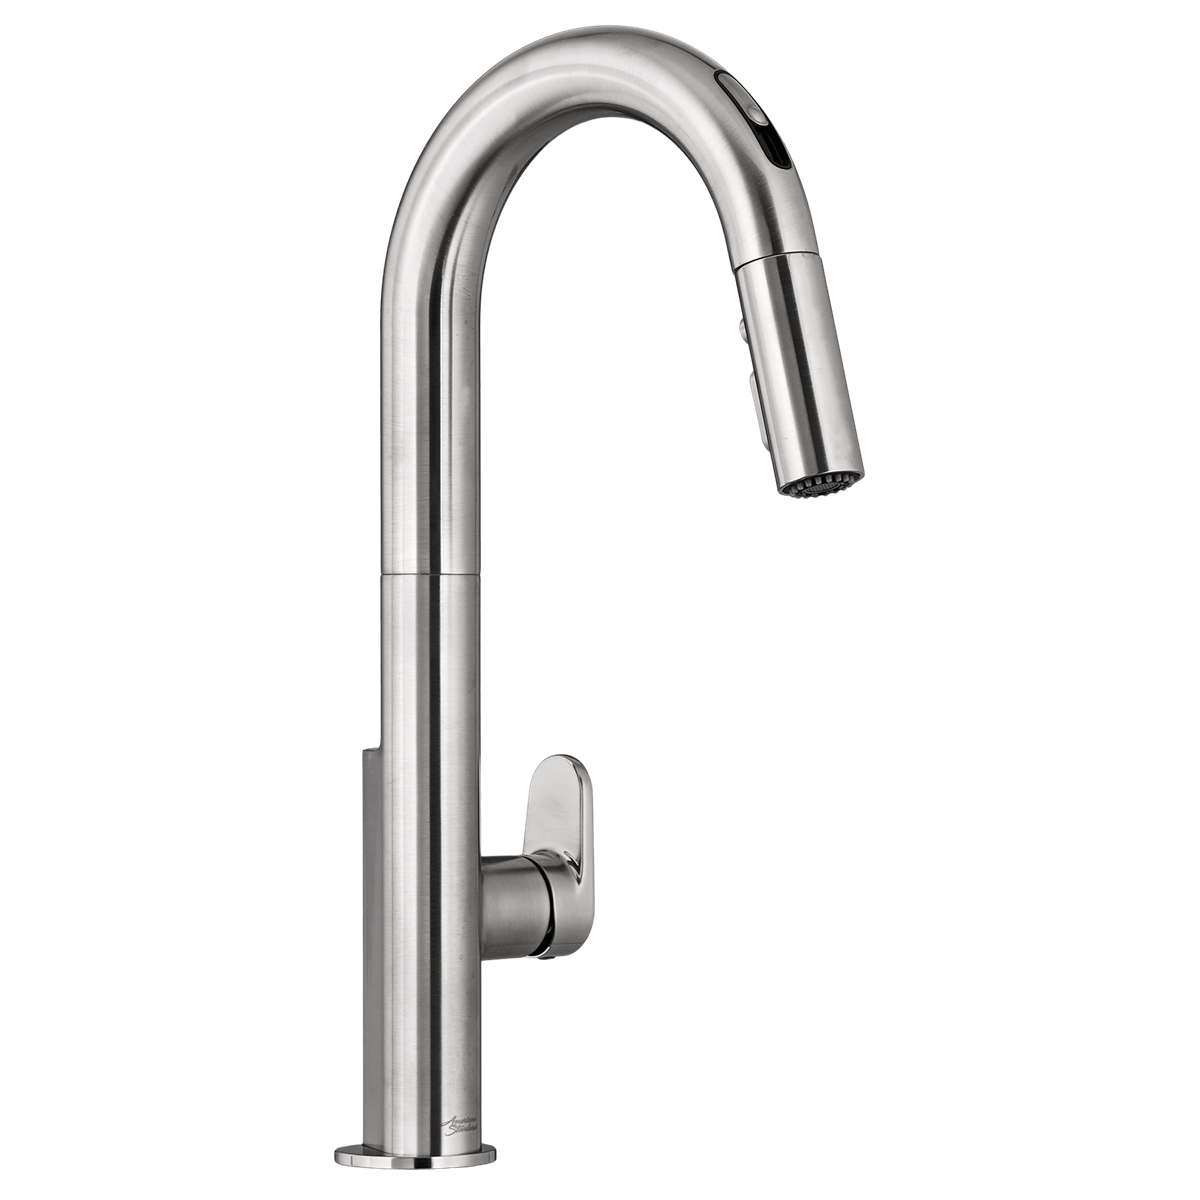 American Standard 4931 380 075 Beale Pull Down Kitchen Faucet With Selectronic Hands Free Technology Stainless Steel